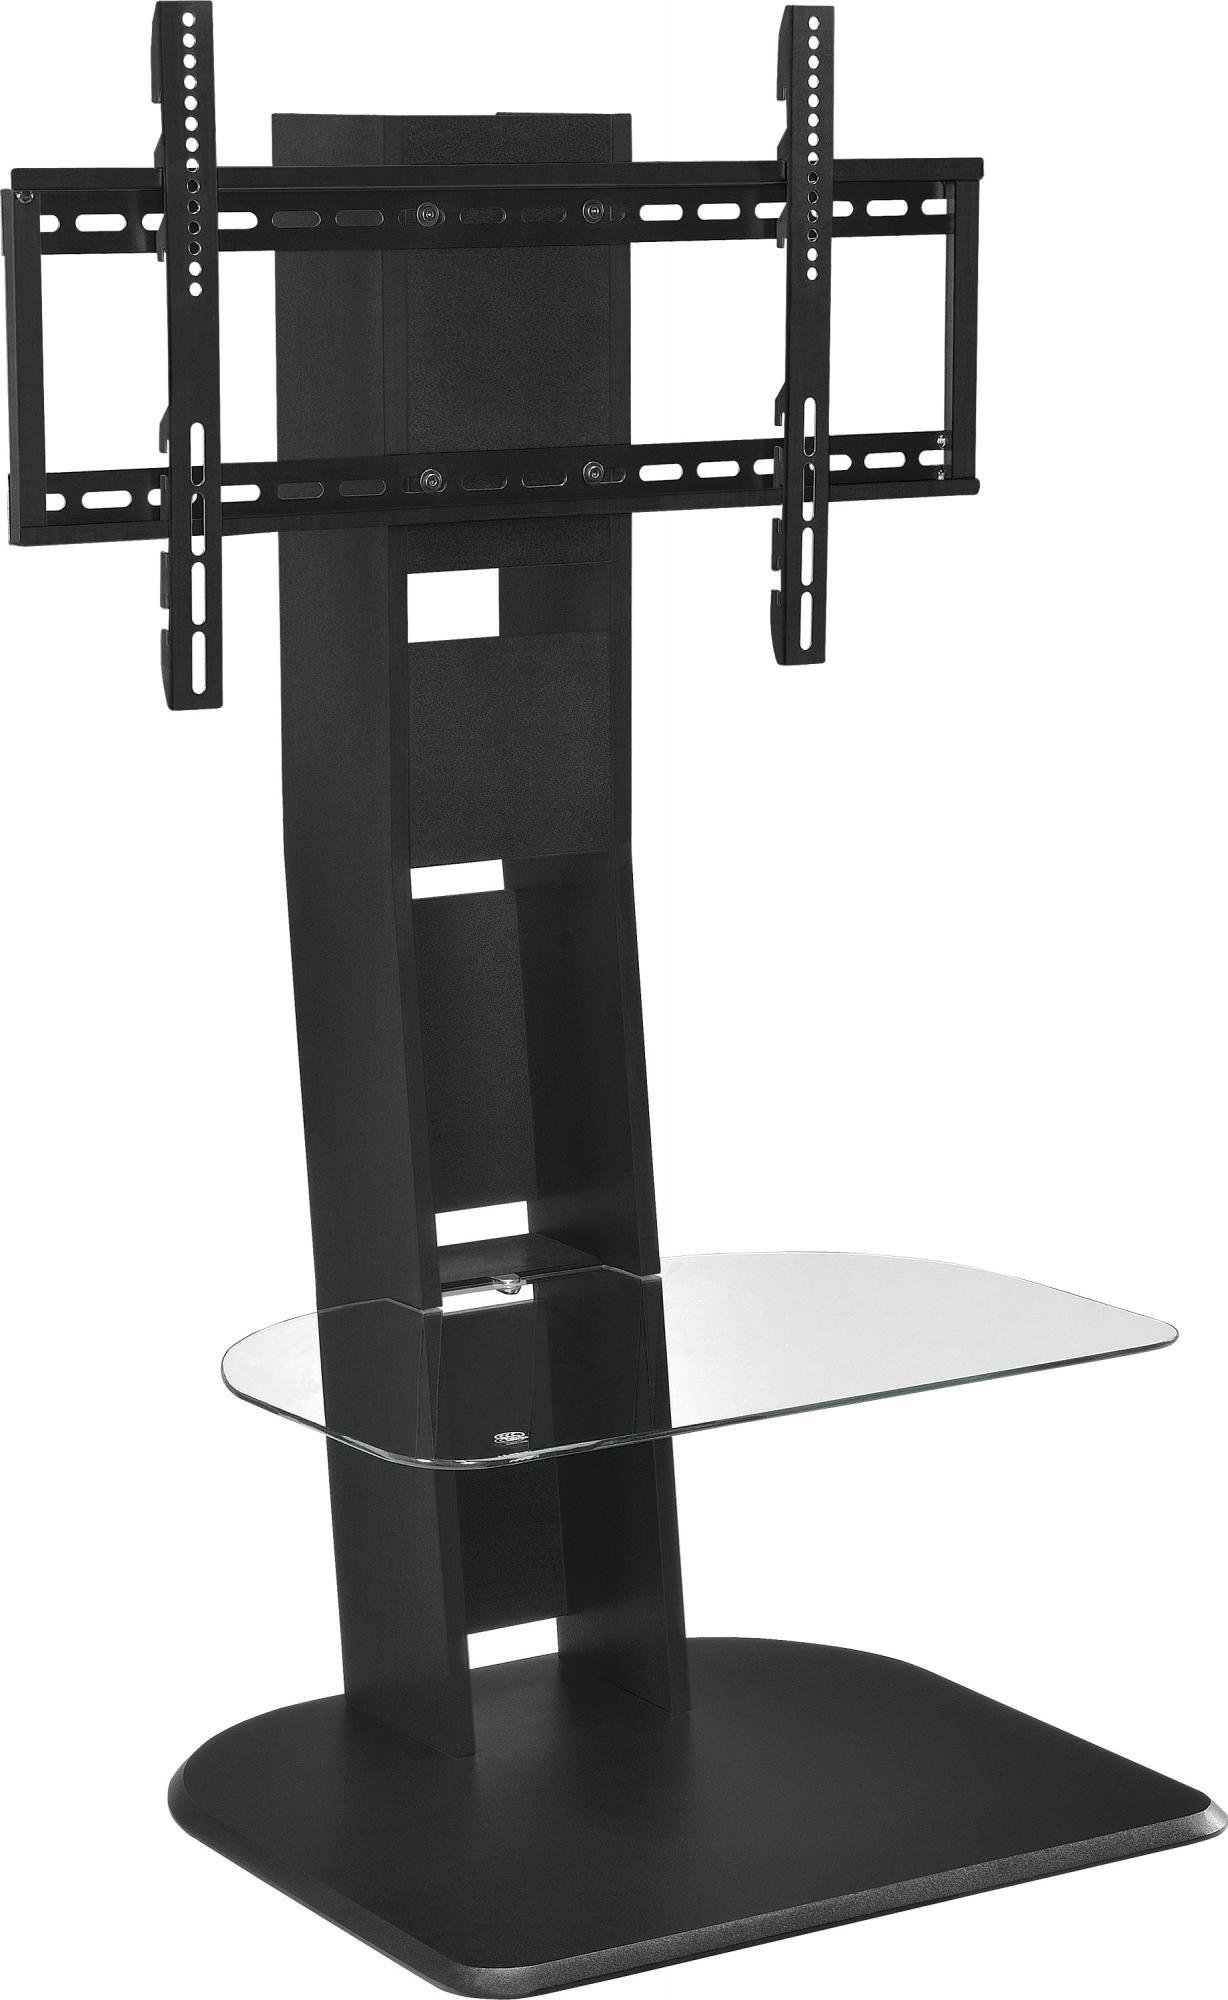 Ameriwood Home Galaxy TV Stand with Mount for TVs up to 50'', Black by Ameriwood Home (Image #3)